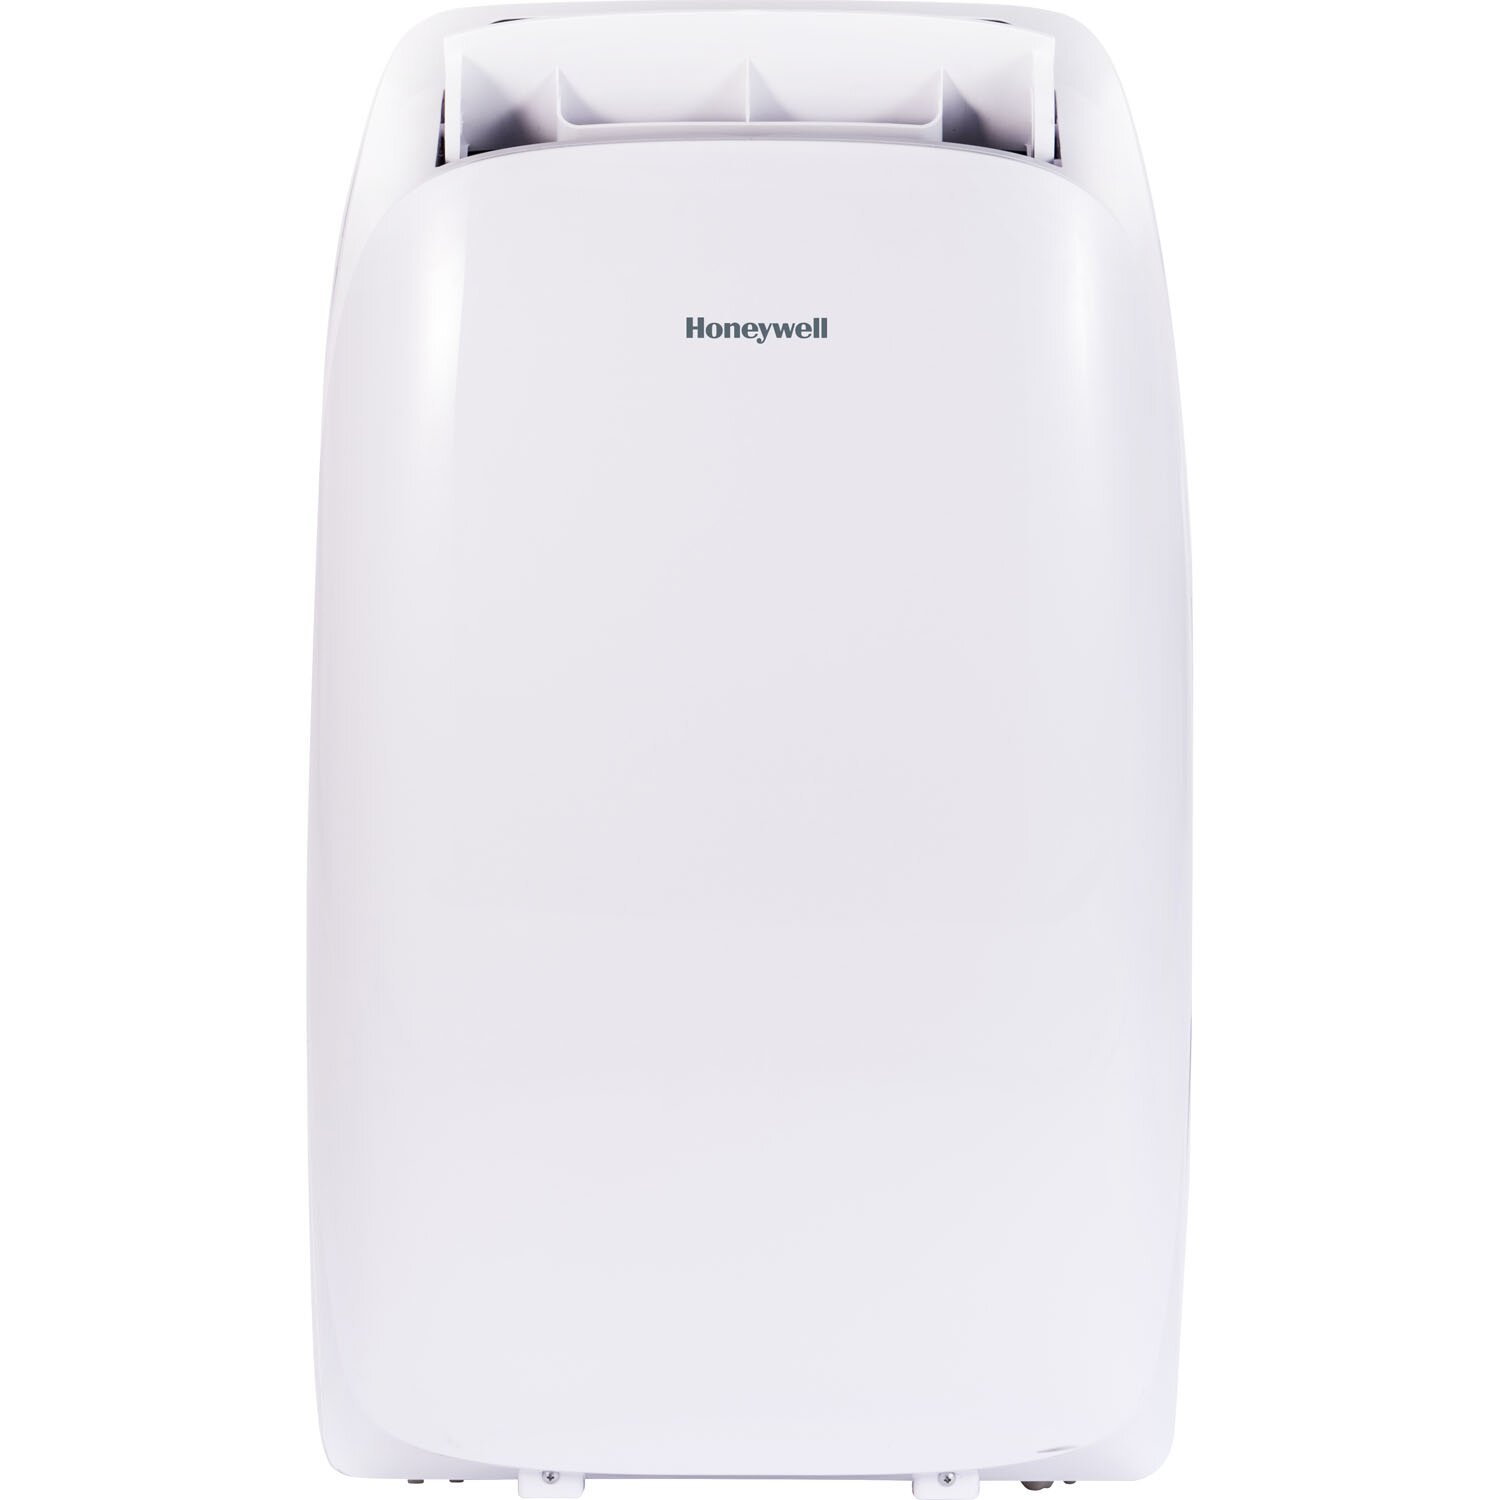 #5D5477 Honeywell HL Series 14 000 BTU Portable Air Conditioner  Best 9863 14000 Portable Air Conditioner photos with 1500x1500 px on helpvideos.info - Air Conditioners, Air Coolers and more